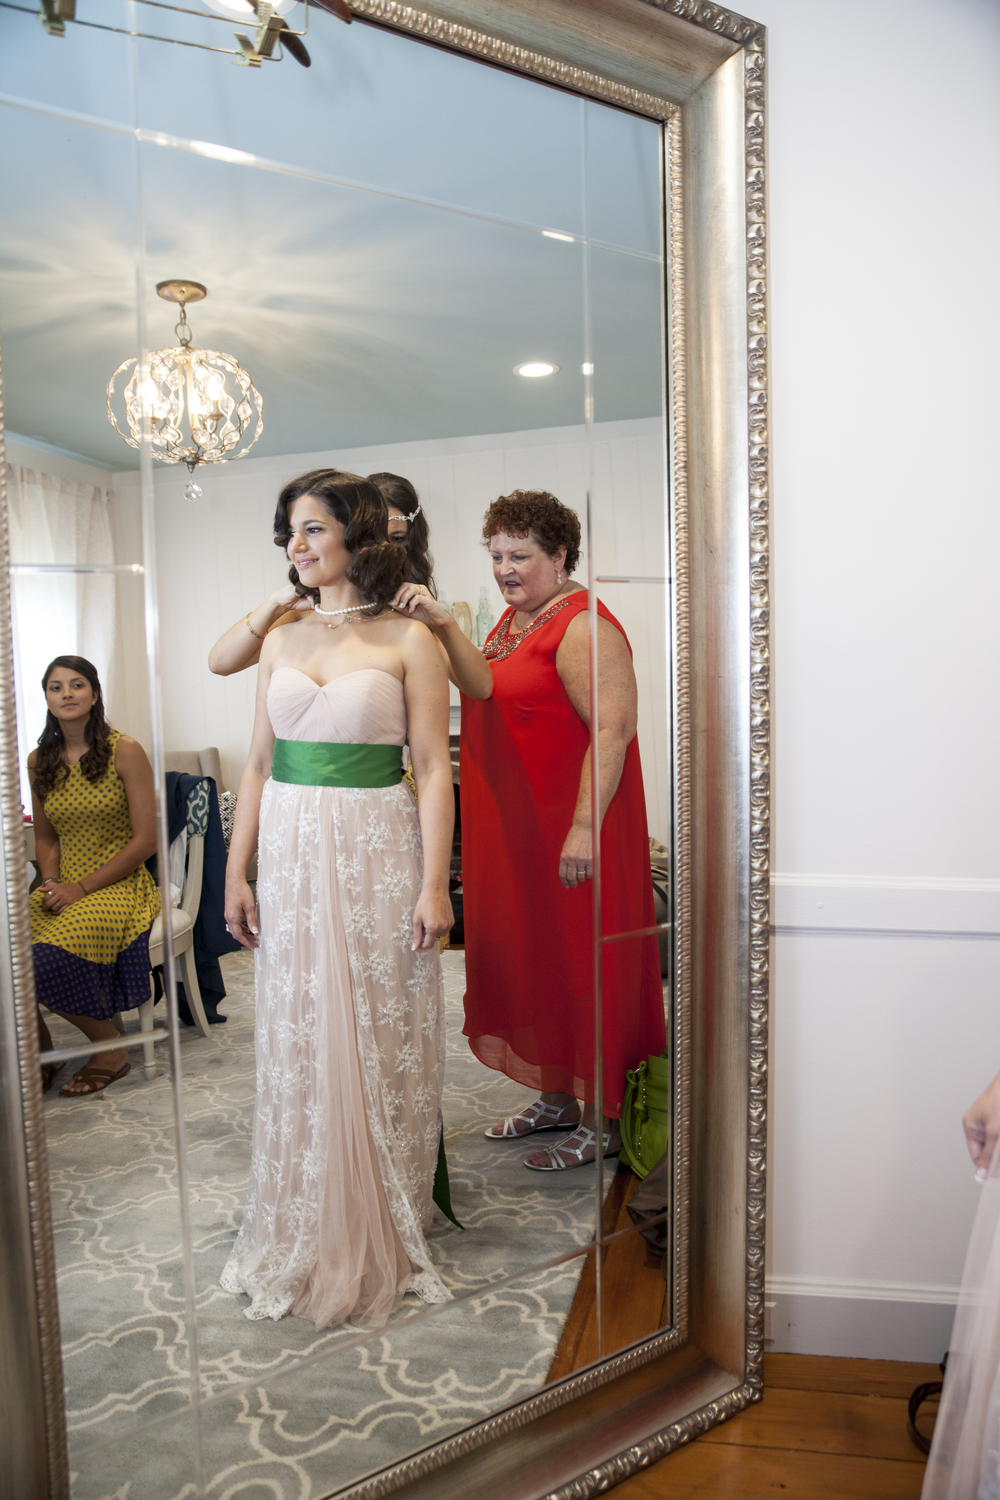 Wedding attendants help the bride prep for the ceremony